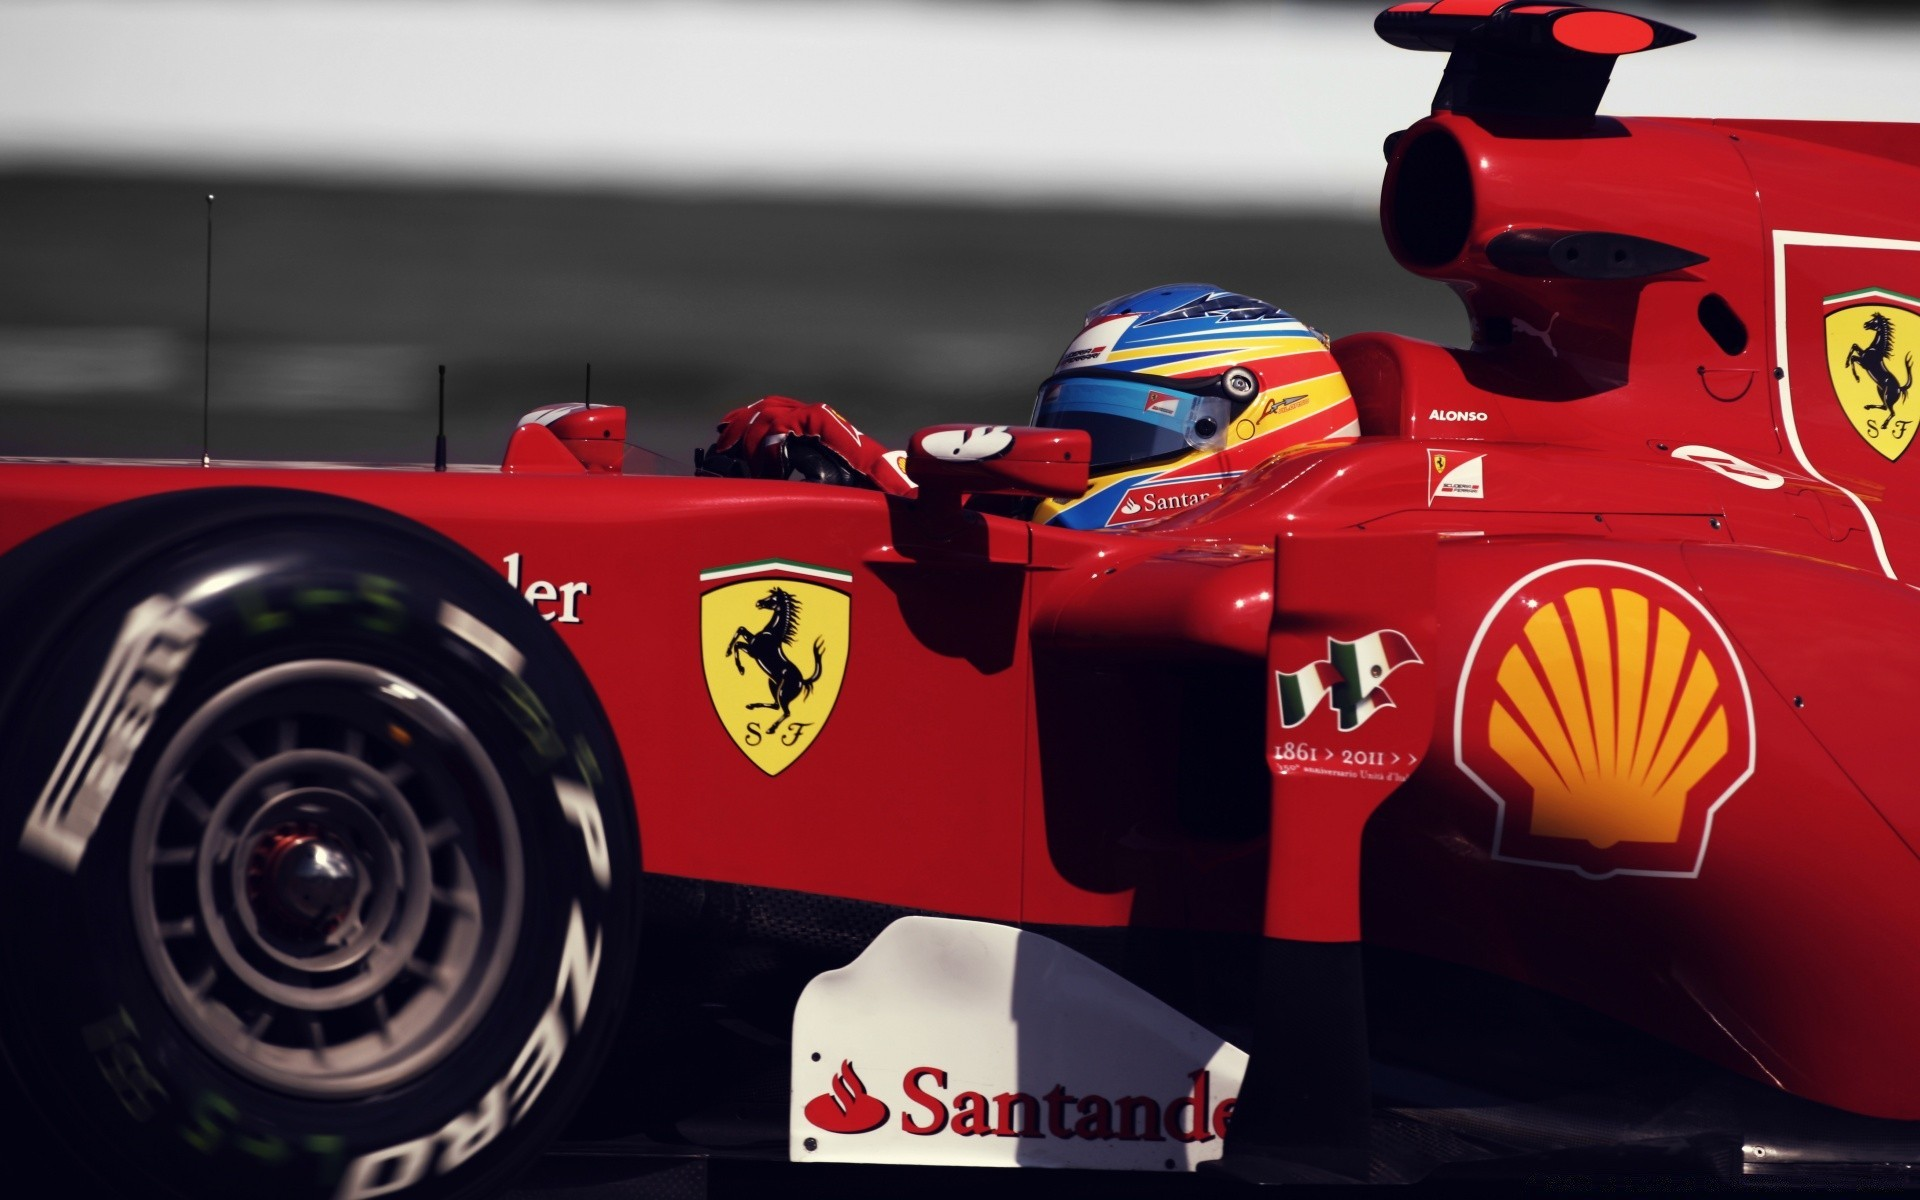 formula 1 race vehicle auto racing fast car track competition transportation system championship action